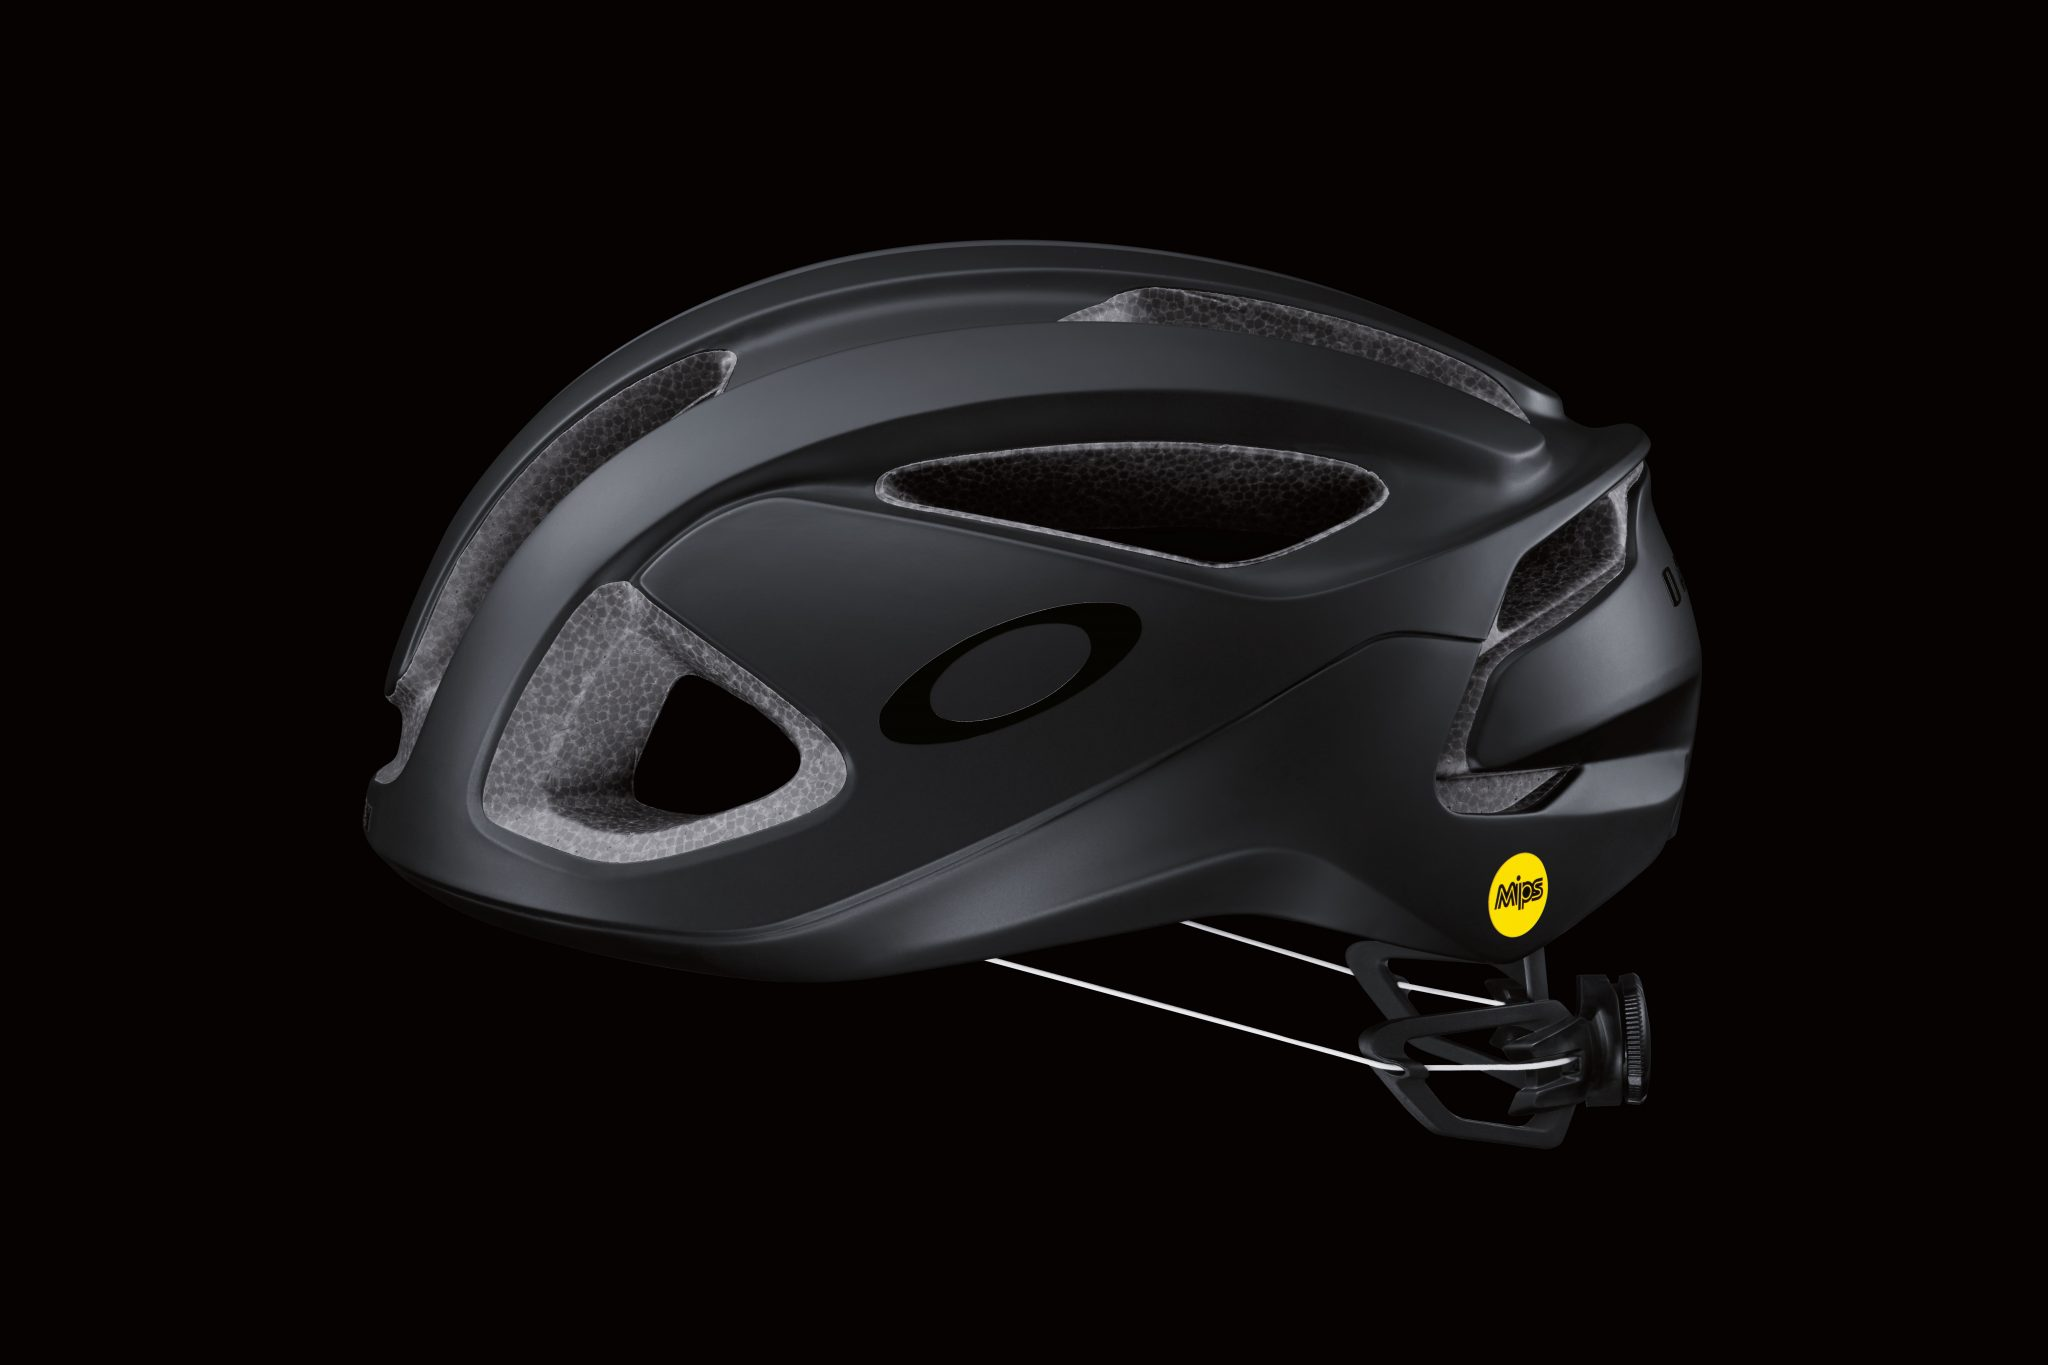 It's hard to imagine helmets without the life-saving technology of multi-directional impact protection system